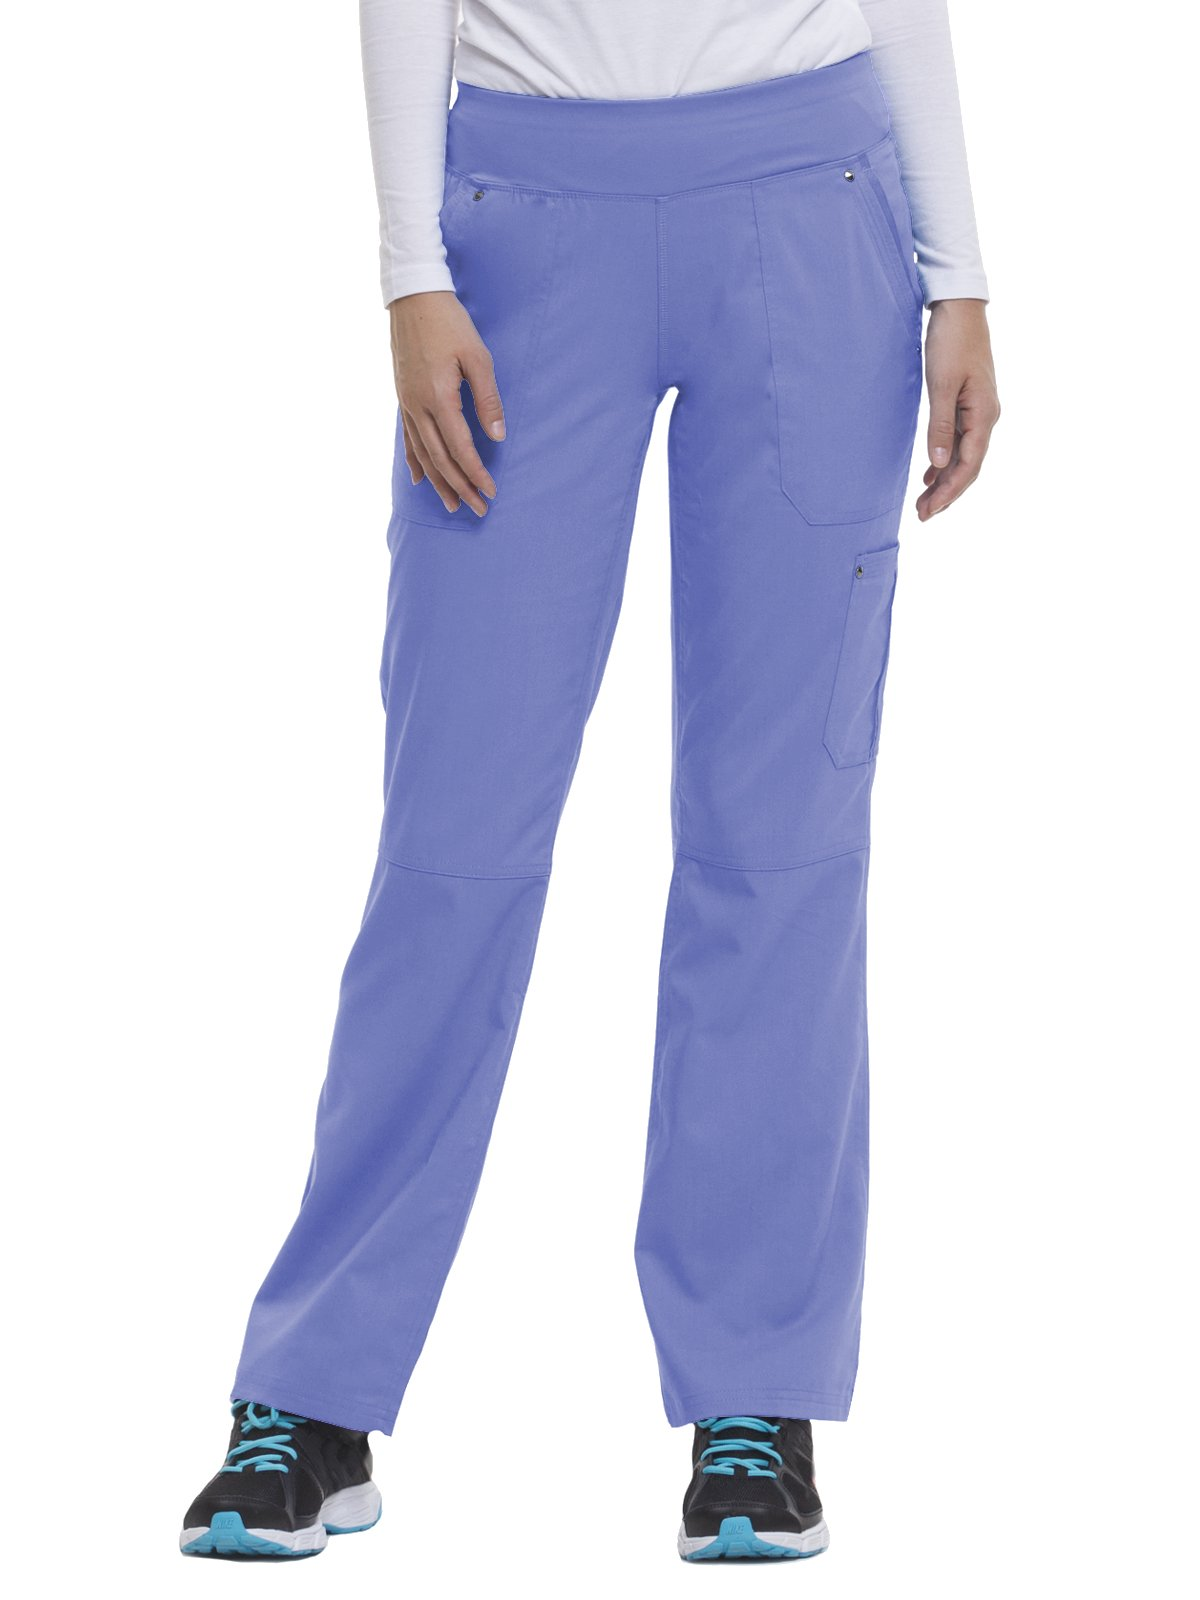 Purple Label by Healing Hands Scrubs Women's Tori 9133 5 Pocket Knit Waist Pant Ceil Blue- 3X-Large